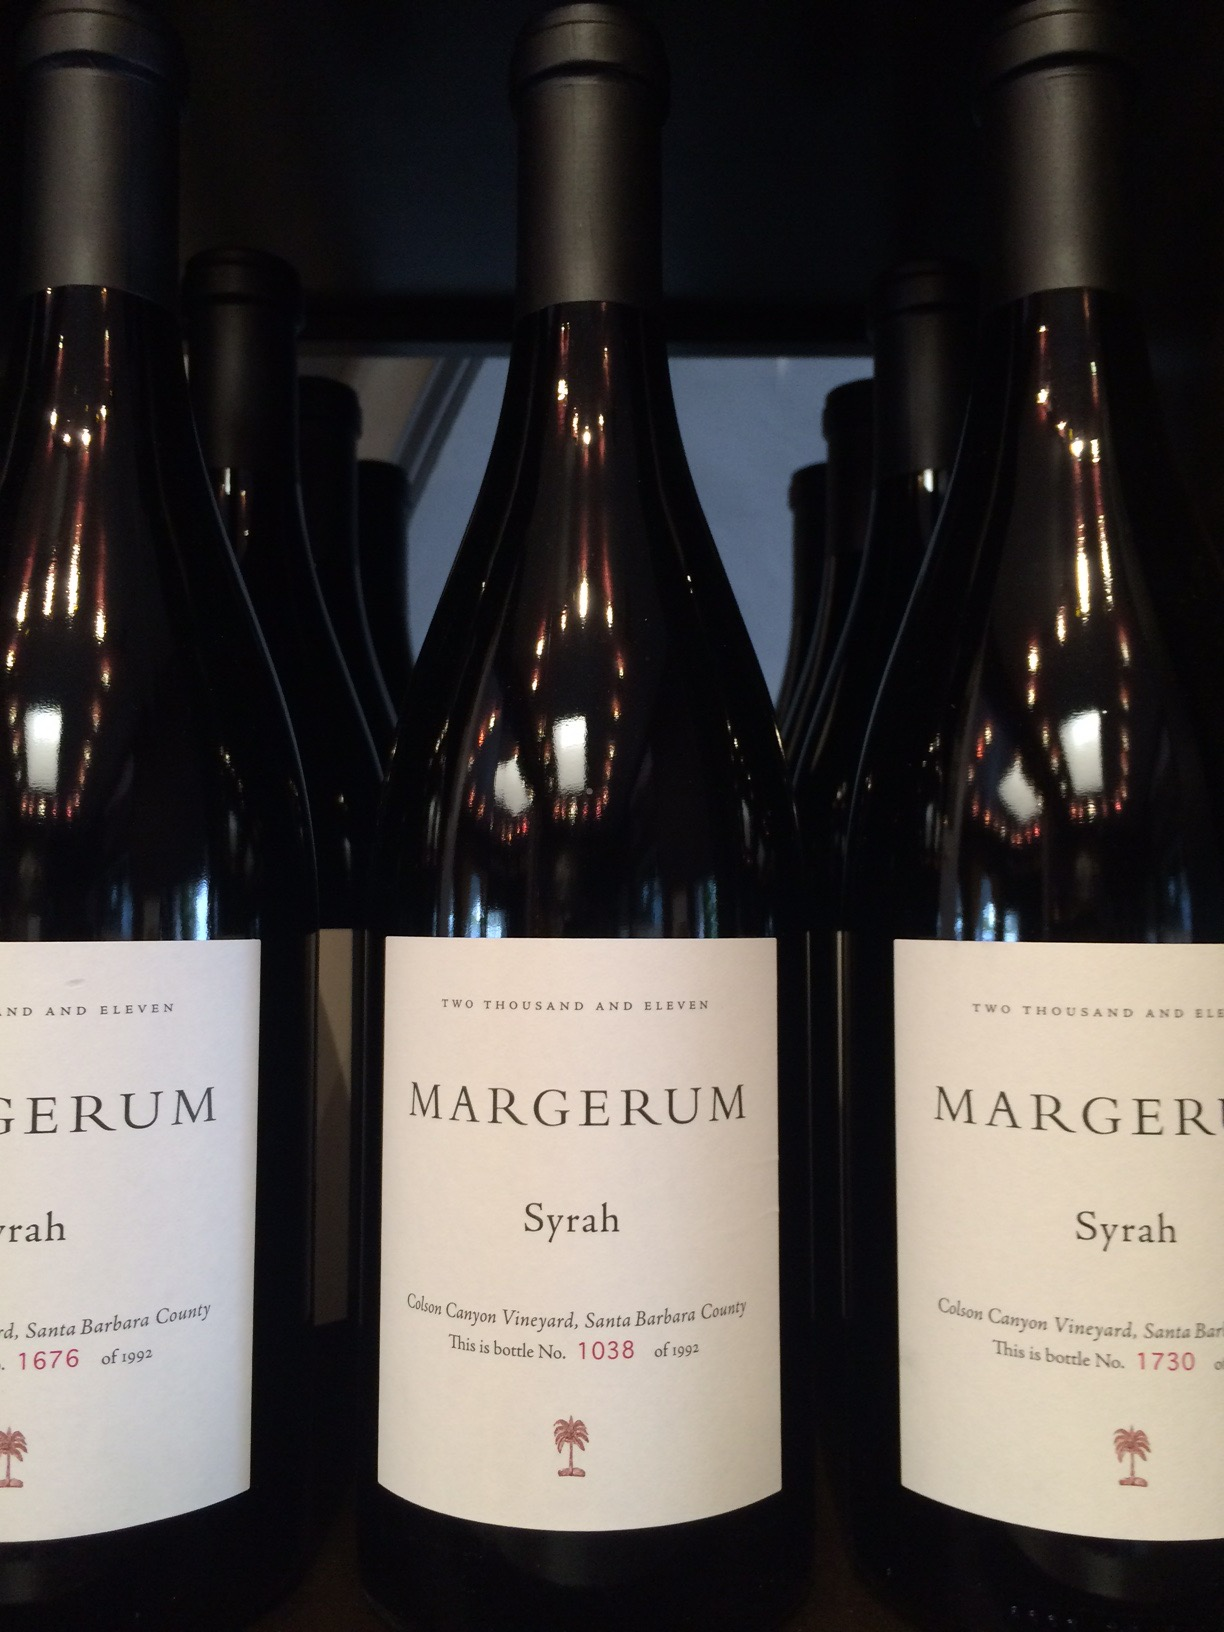 2011 Margerum Syrah, Colson Canyon Vineyard, Santa Barbara County